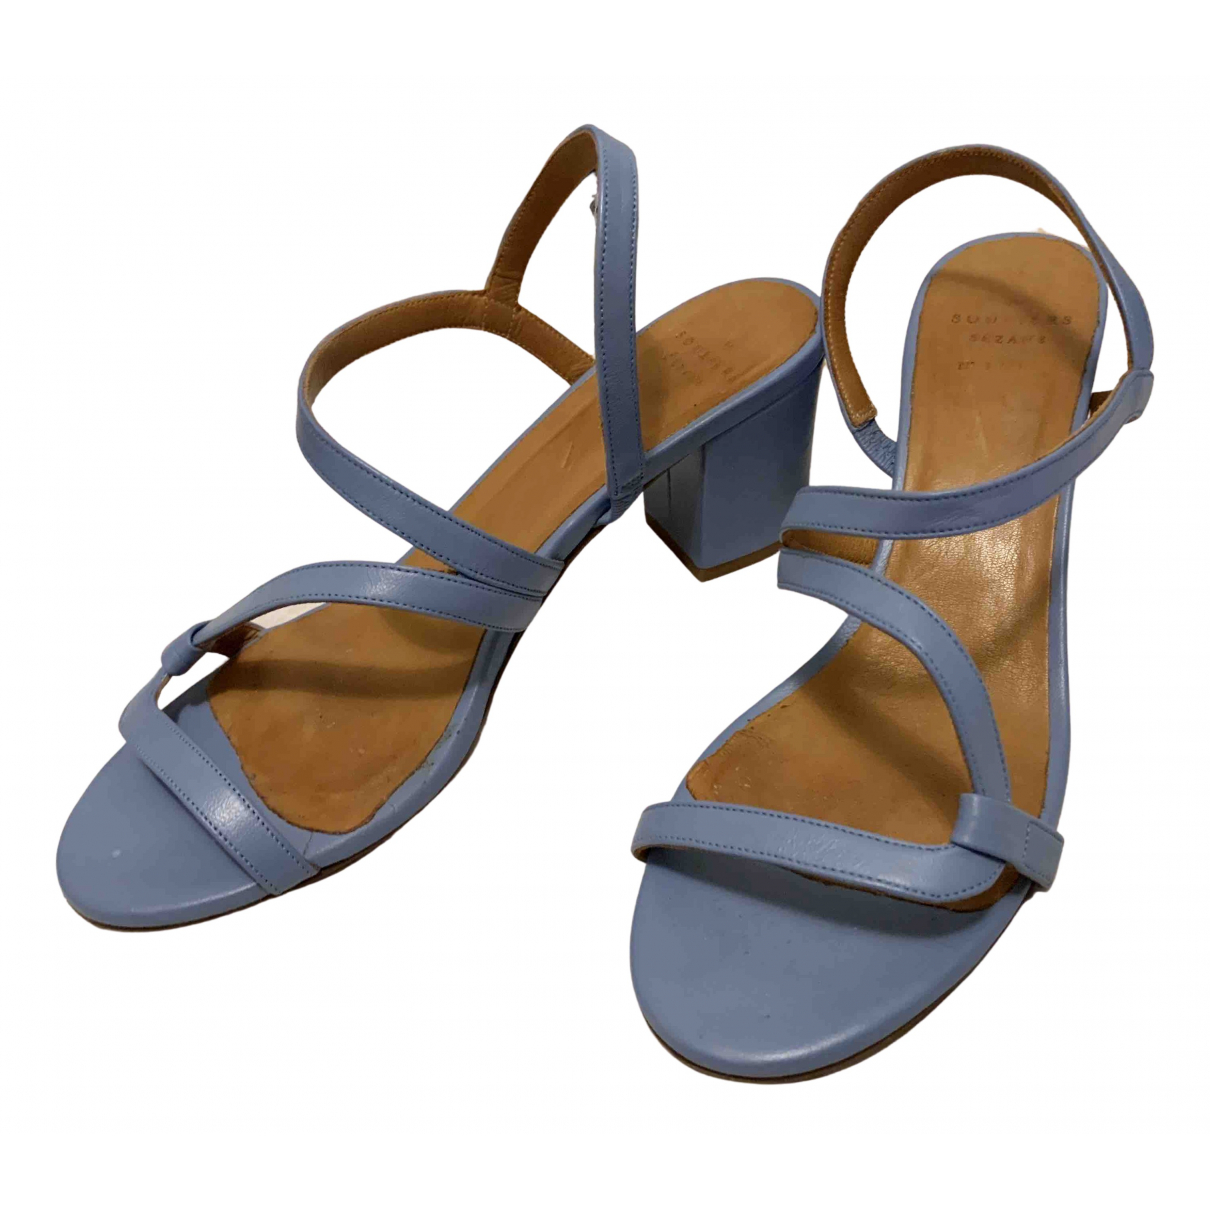 Sézane Spring Summer 2020 Blue Leather Sandals for Women 38 EU